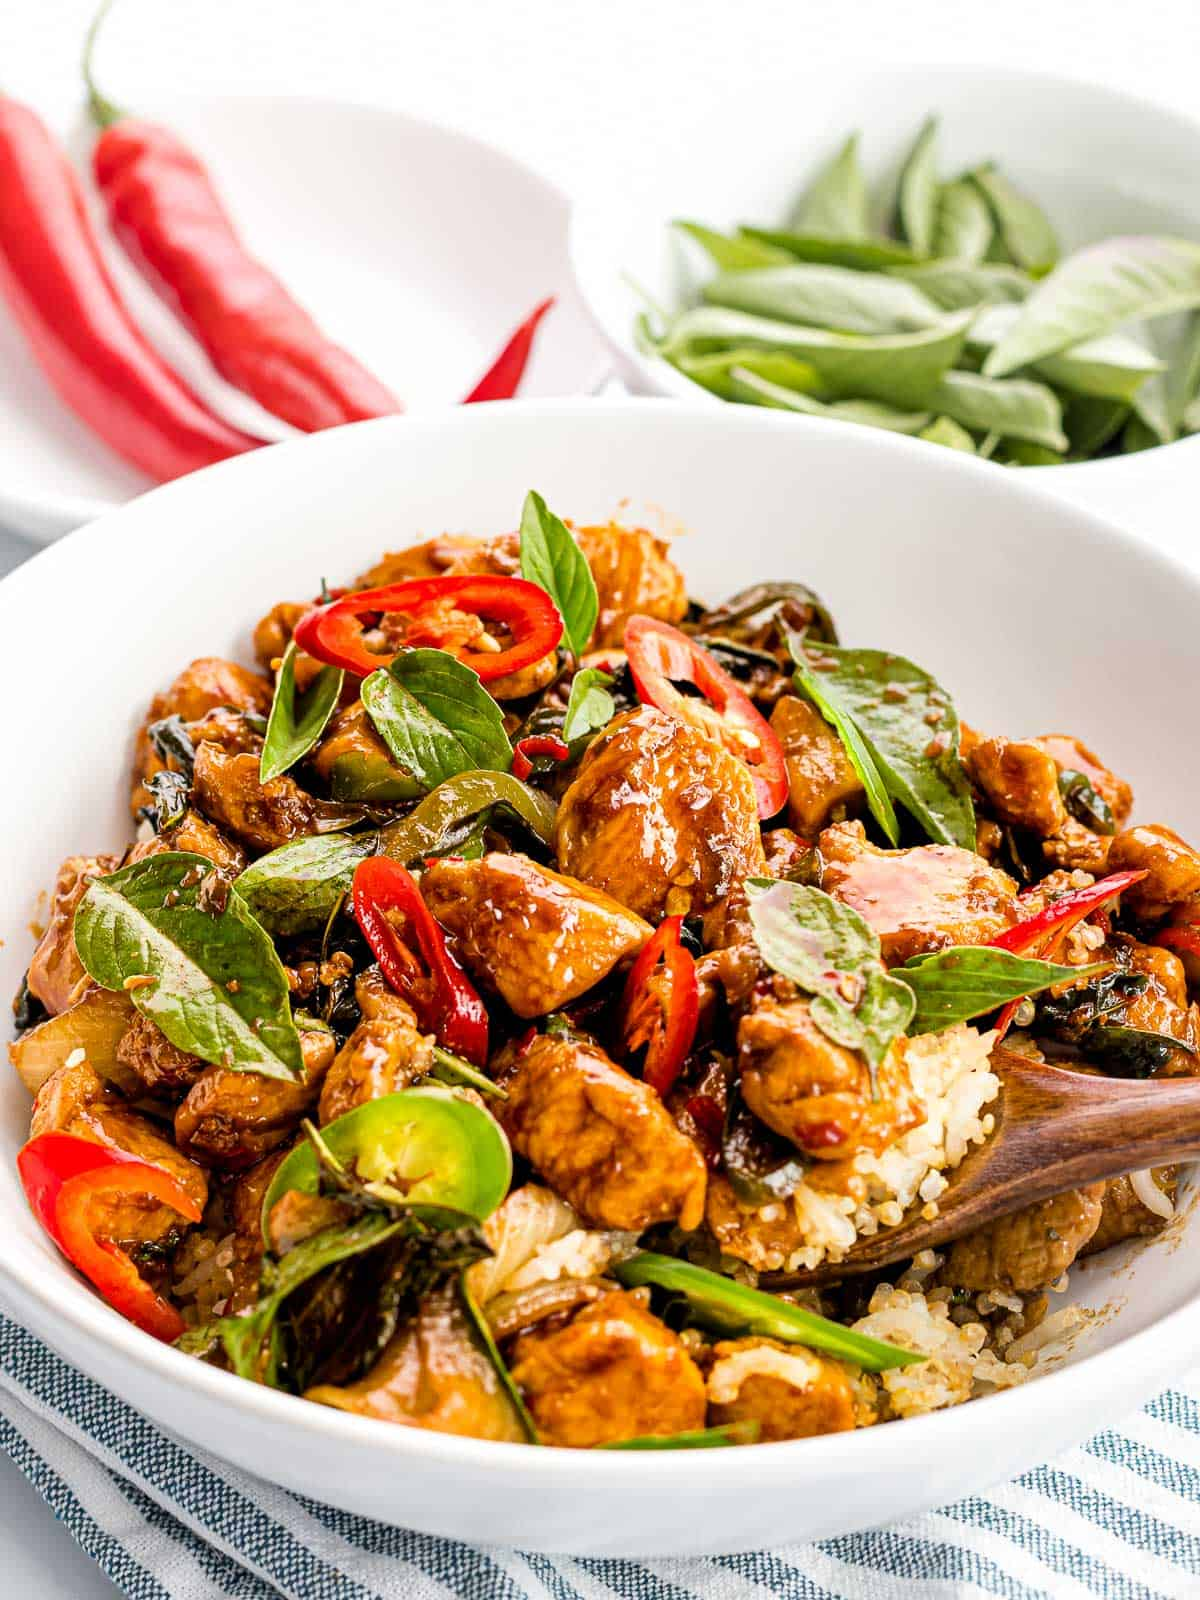 Thai basil chicken stir fried with red chili peppers in a bowl with rice.